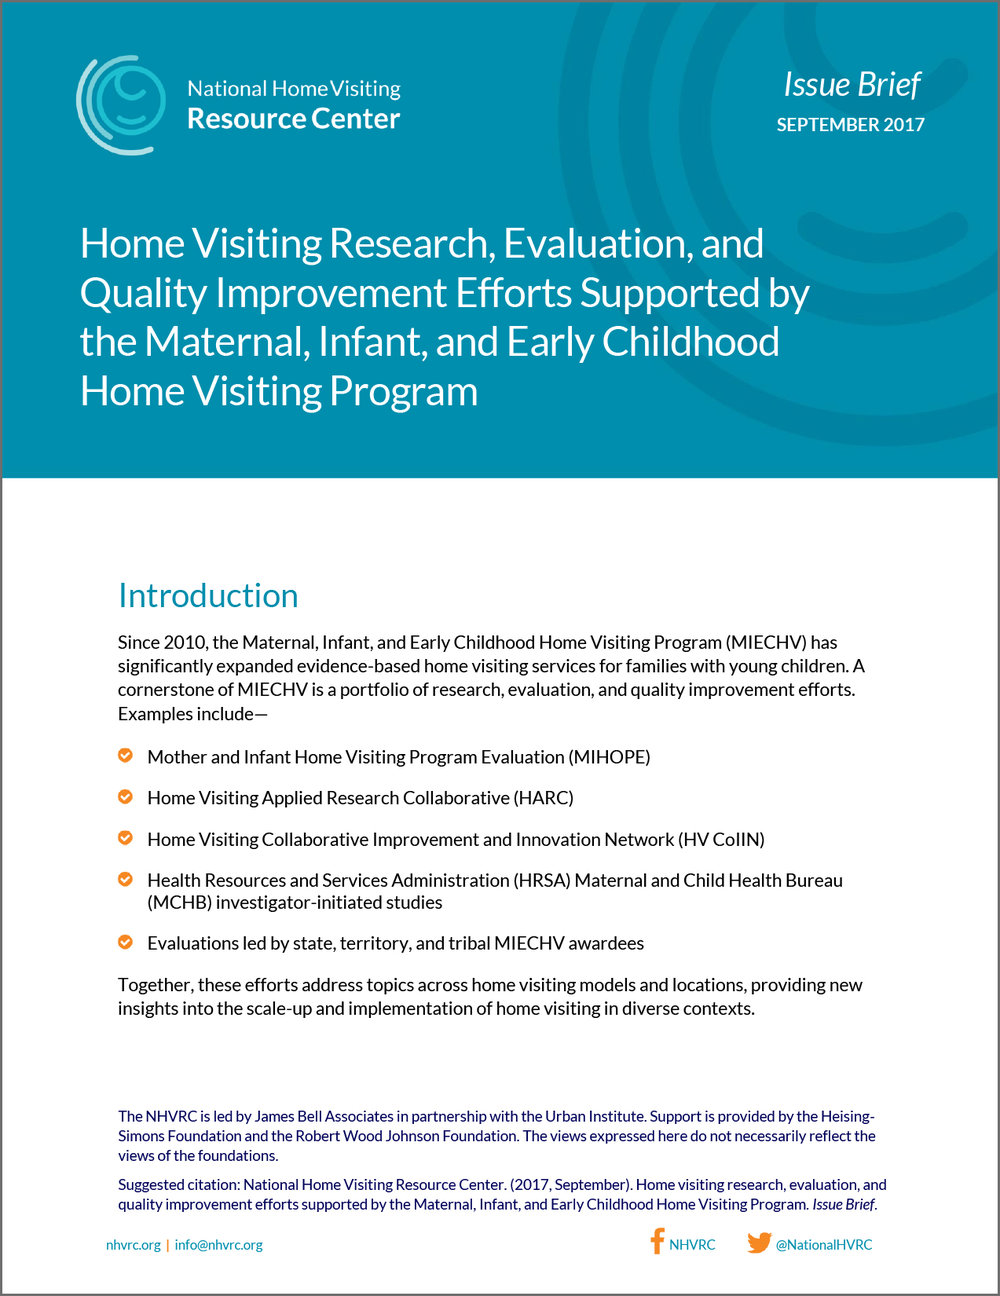 NHVRC Issue Brief, Home Visiting Research, Evaluation, and Quality Improvement Efforts Supported by the Maternal, Infant, and Early Childhood Home Visiting Program